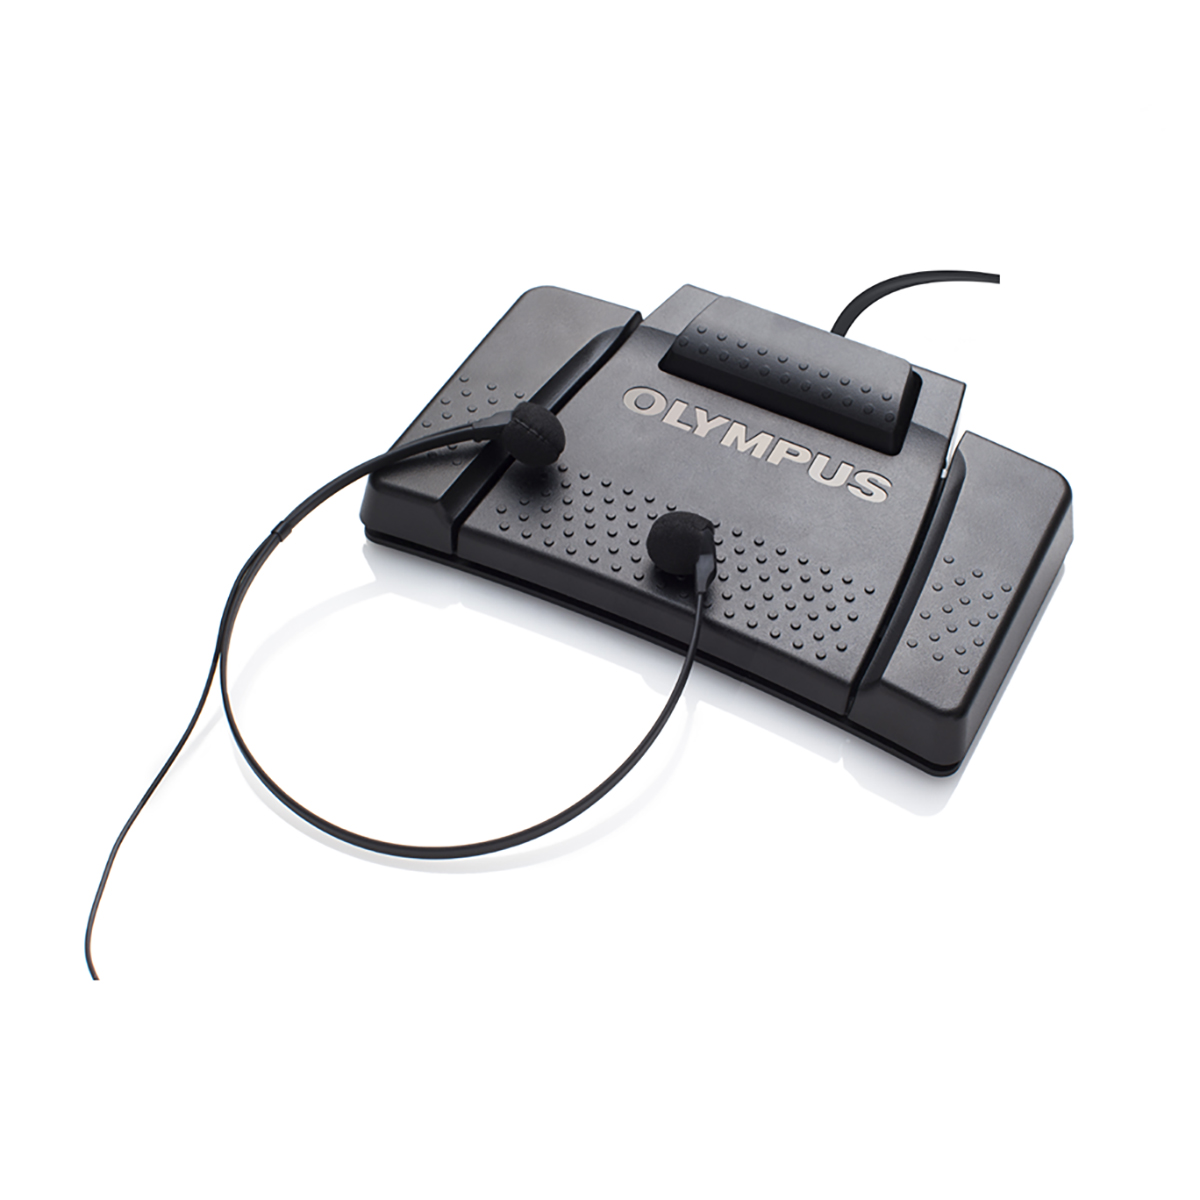 Software Olympus AS 9000 Transcription Kit 4 Button USB Foot pedal Black Ref V7410600E000